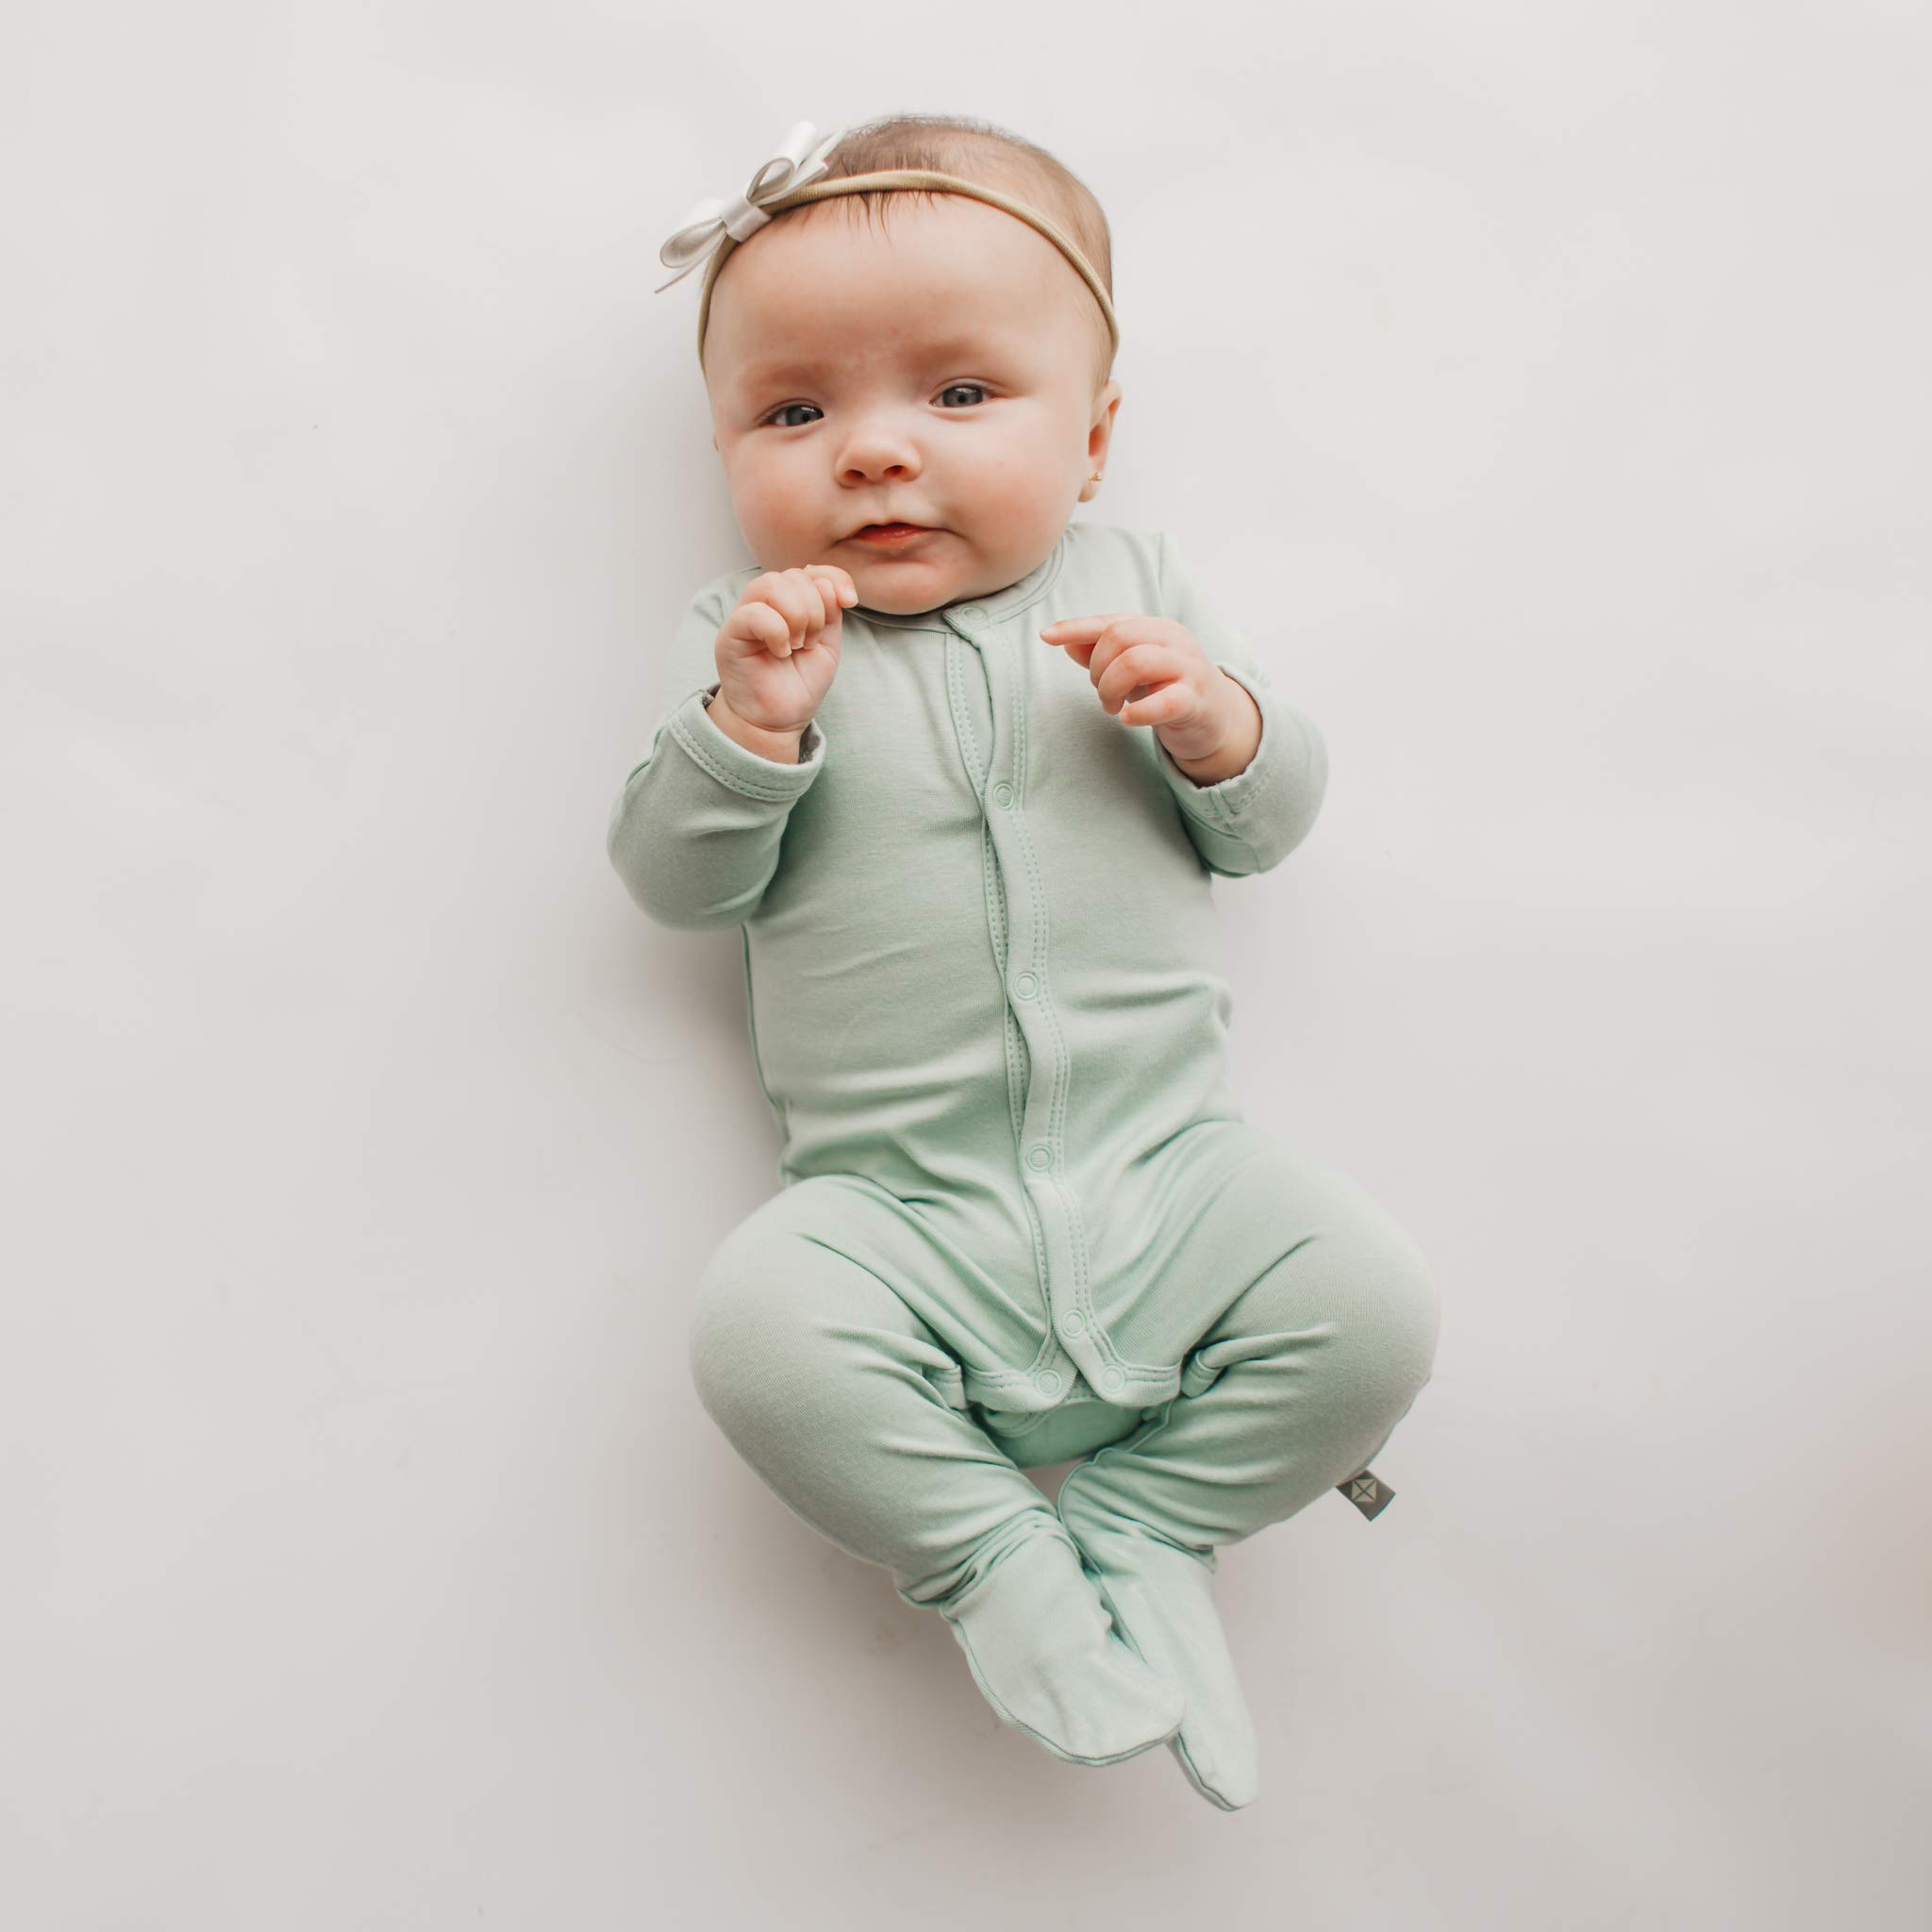 Baby Footed Pajamas Made of Soft Organic Bamboo Material KYTE BABY Footies 3-6 Months, Sage 0-24 Months Solid Colors